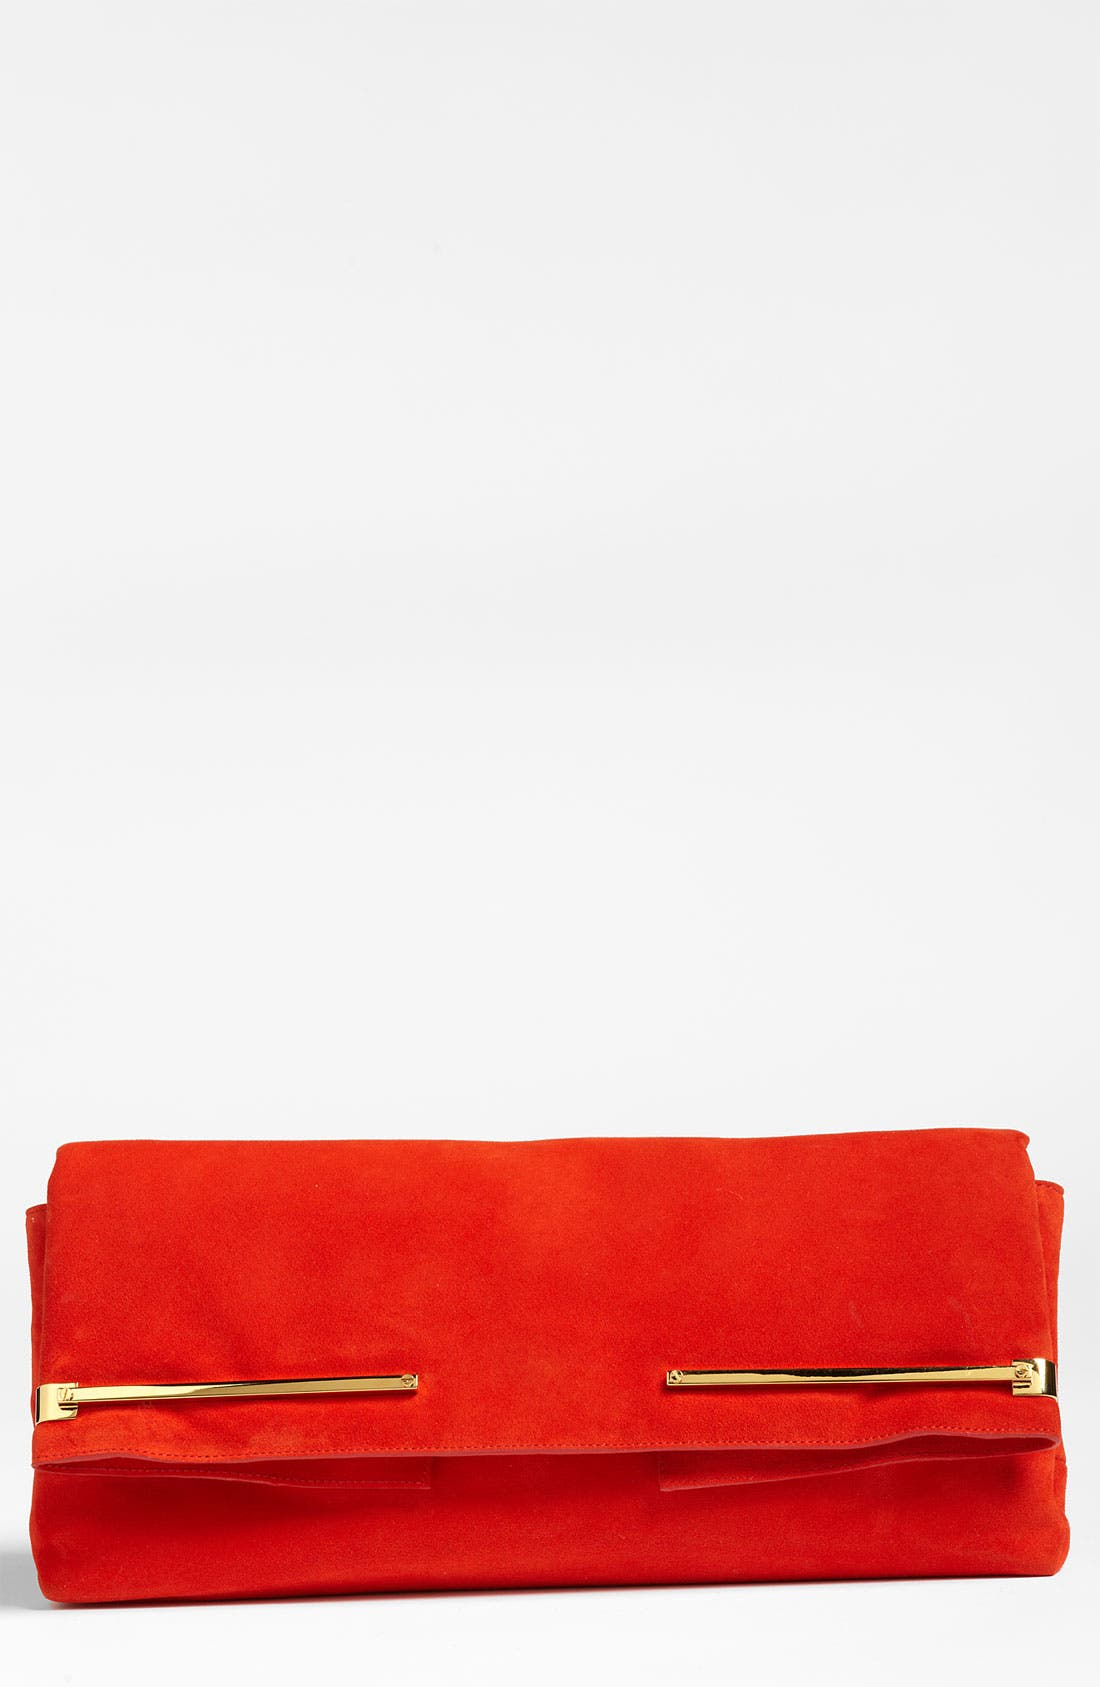 Main Image - Lanvin Leather Clutch